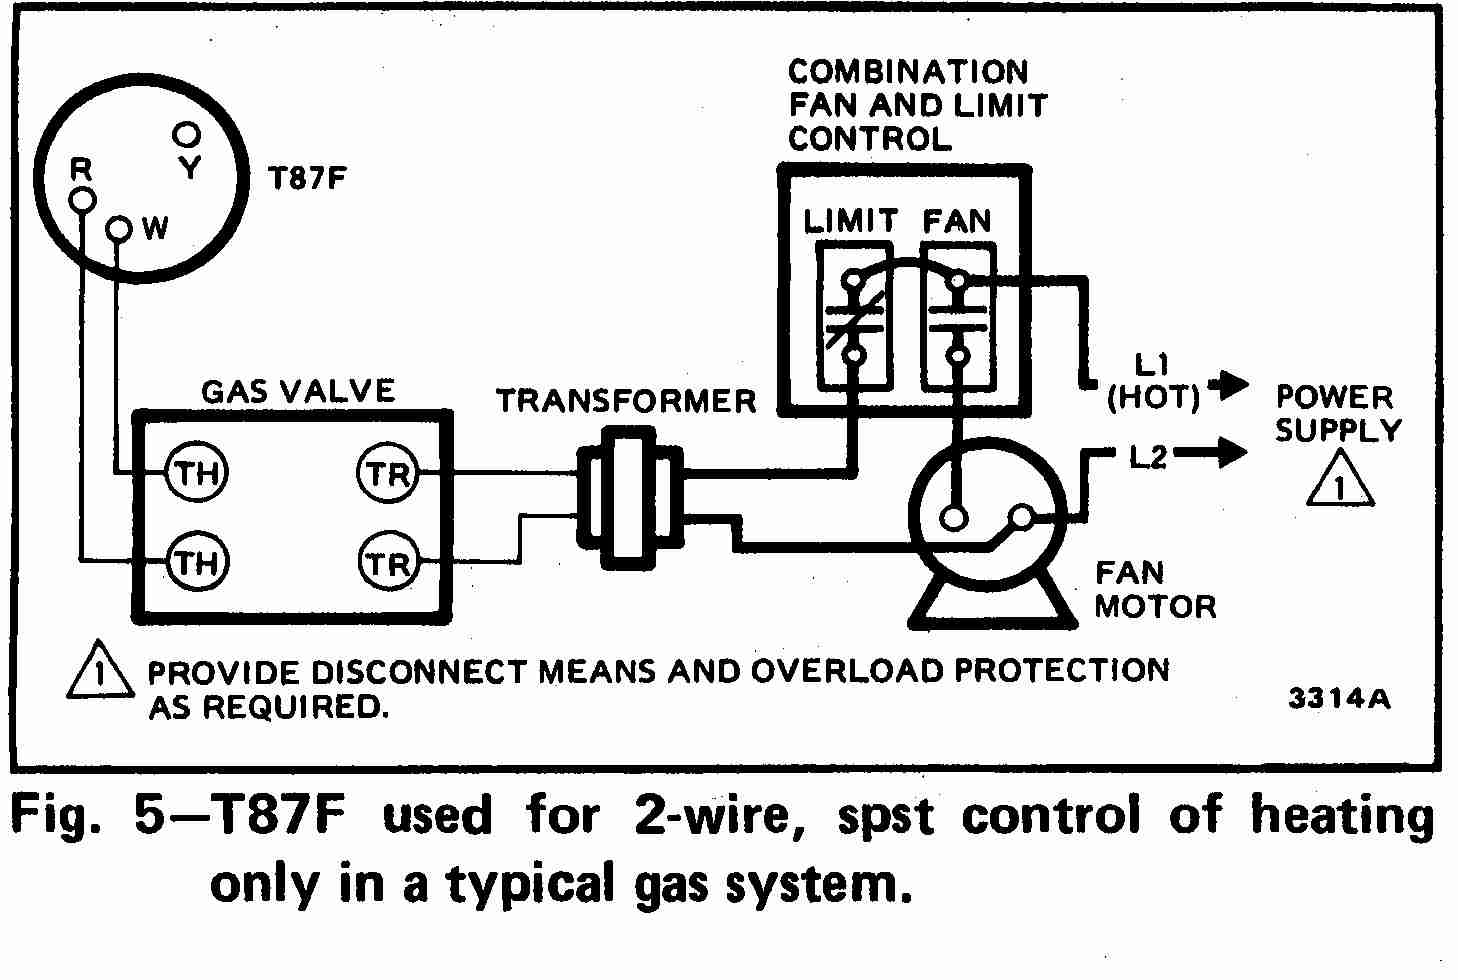 00001 besides 113592 Retrofit Variable Speed Blower Motor Payne Furnace 2 further 32061 further Digital LED Voltmeter Using ICL7107 17481 likewise ALT 100 3 SW. on dayton wiring diagrams